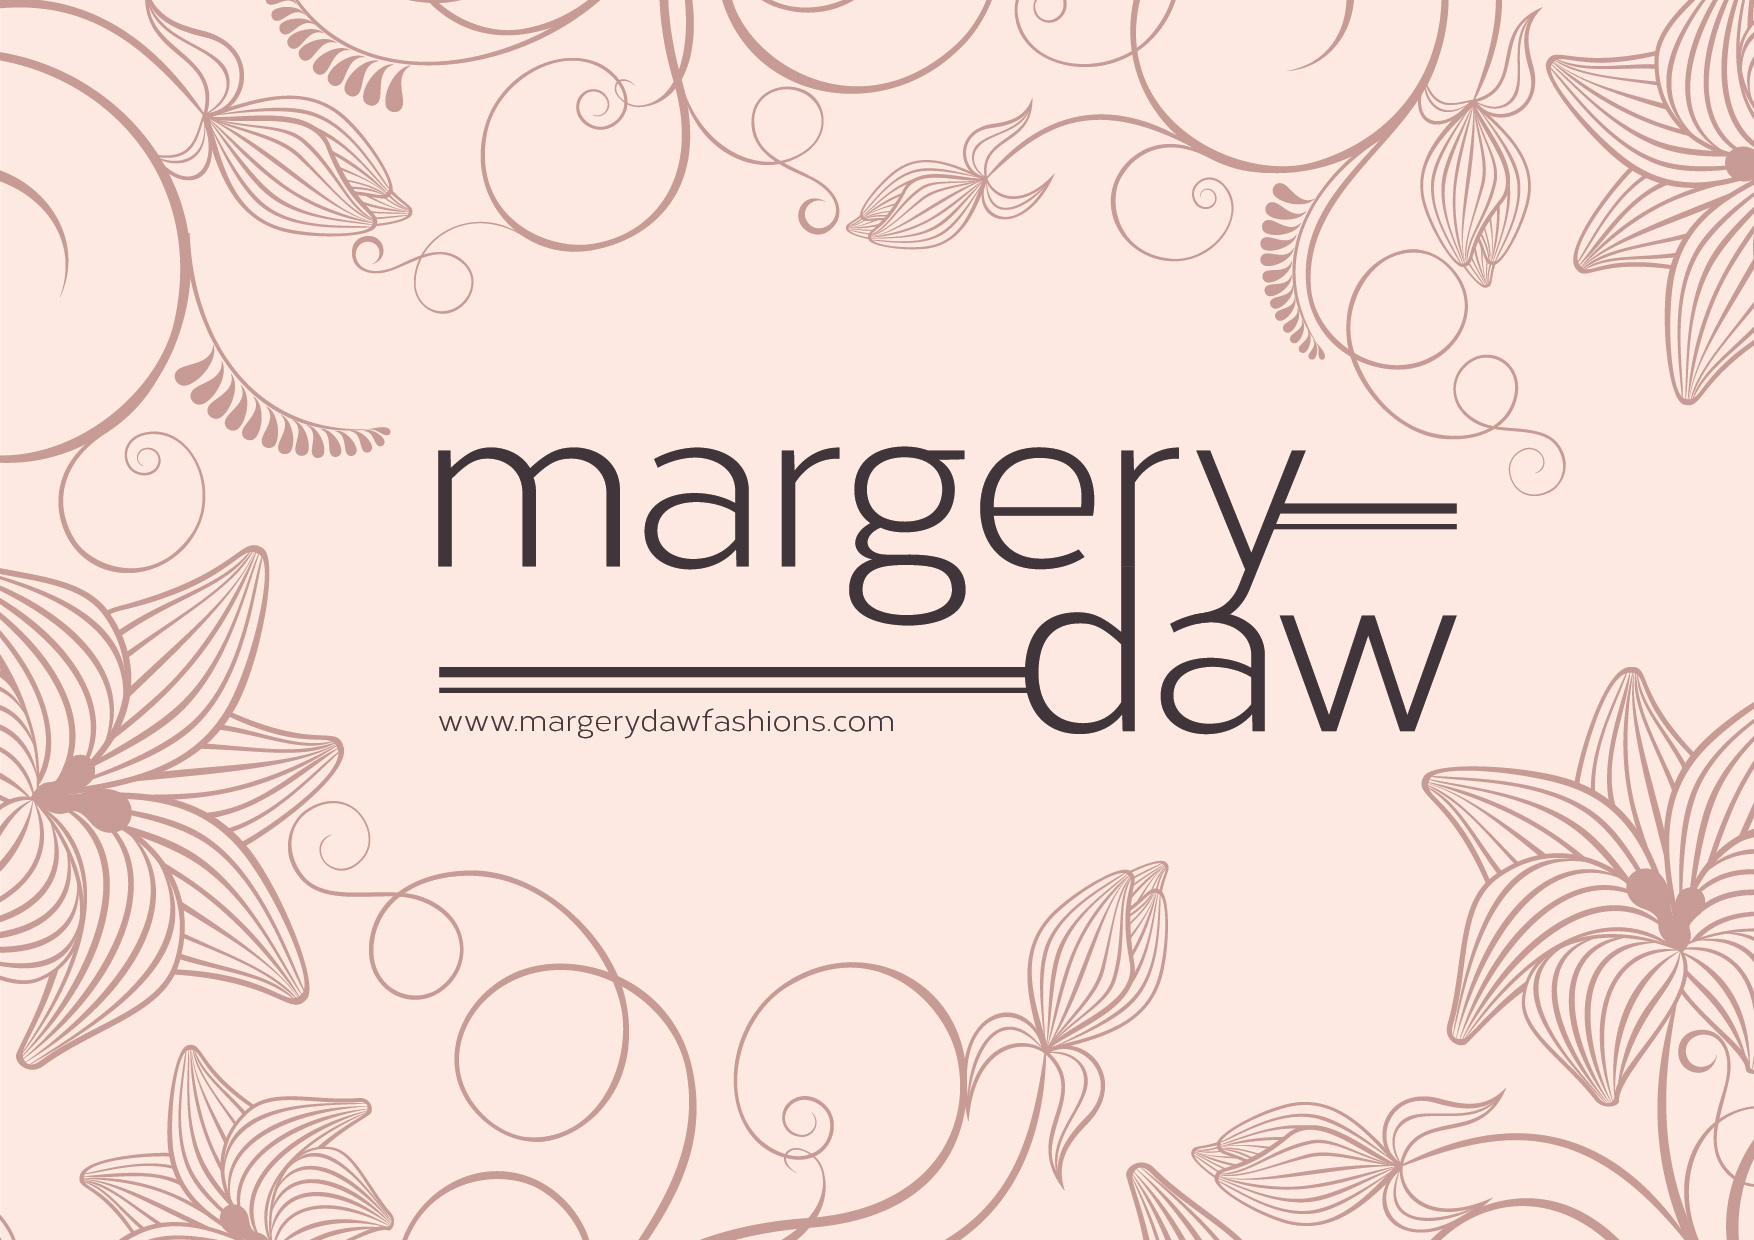 Margery Daw